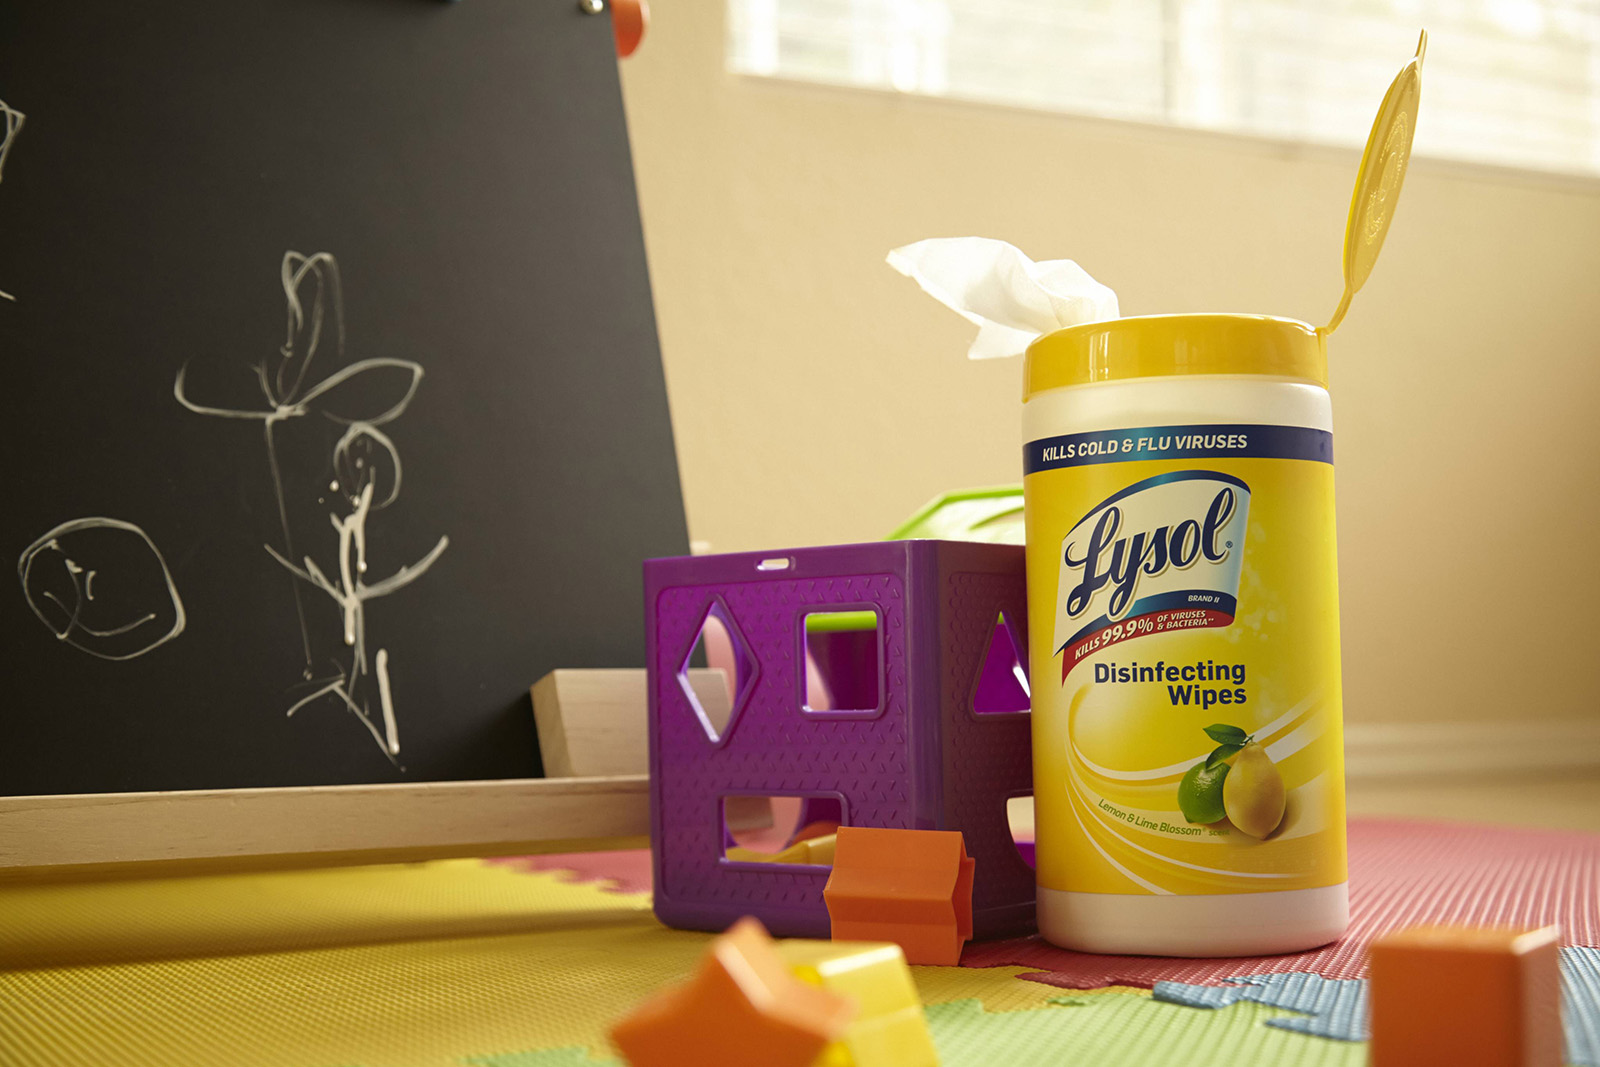 Canister of Lysol Disinfecting wipes on colorful foam floor next to toys and blackboard with chalk drawings